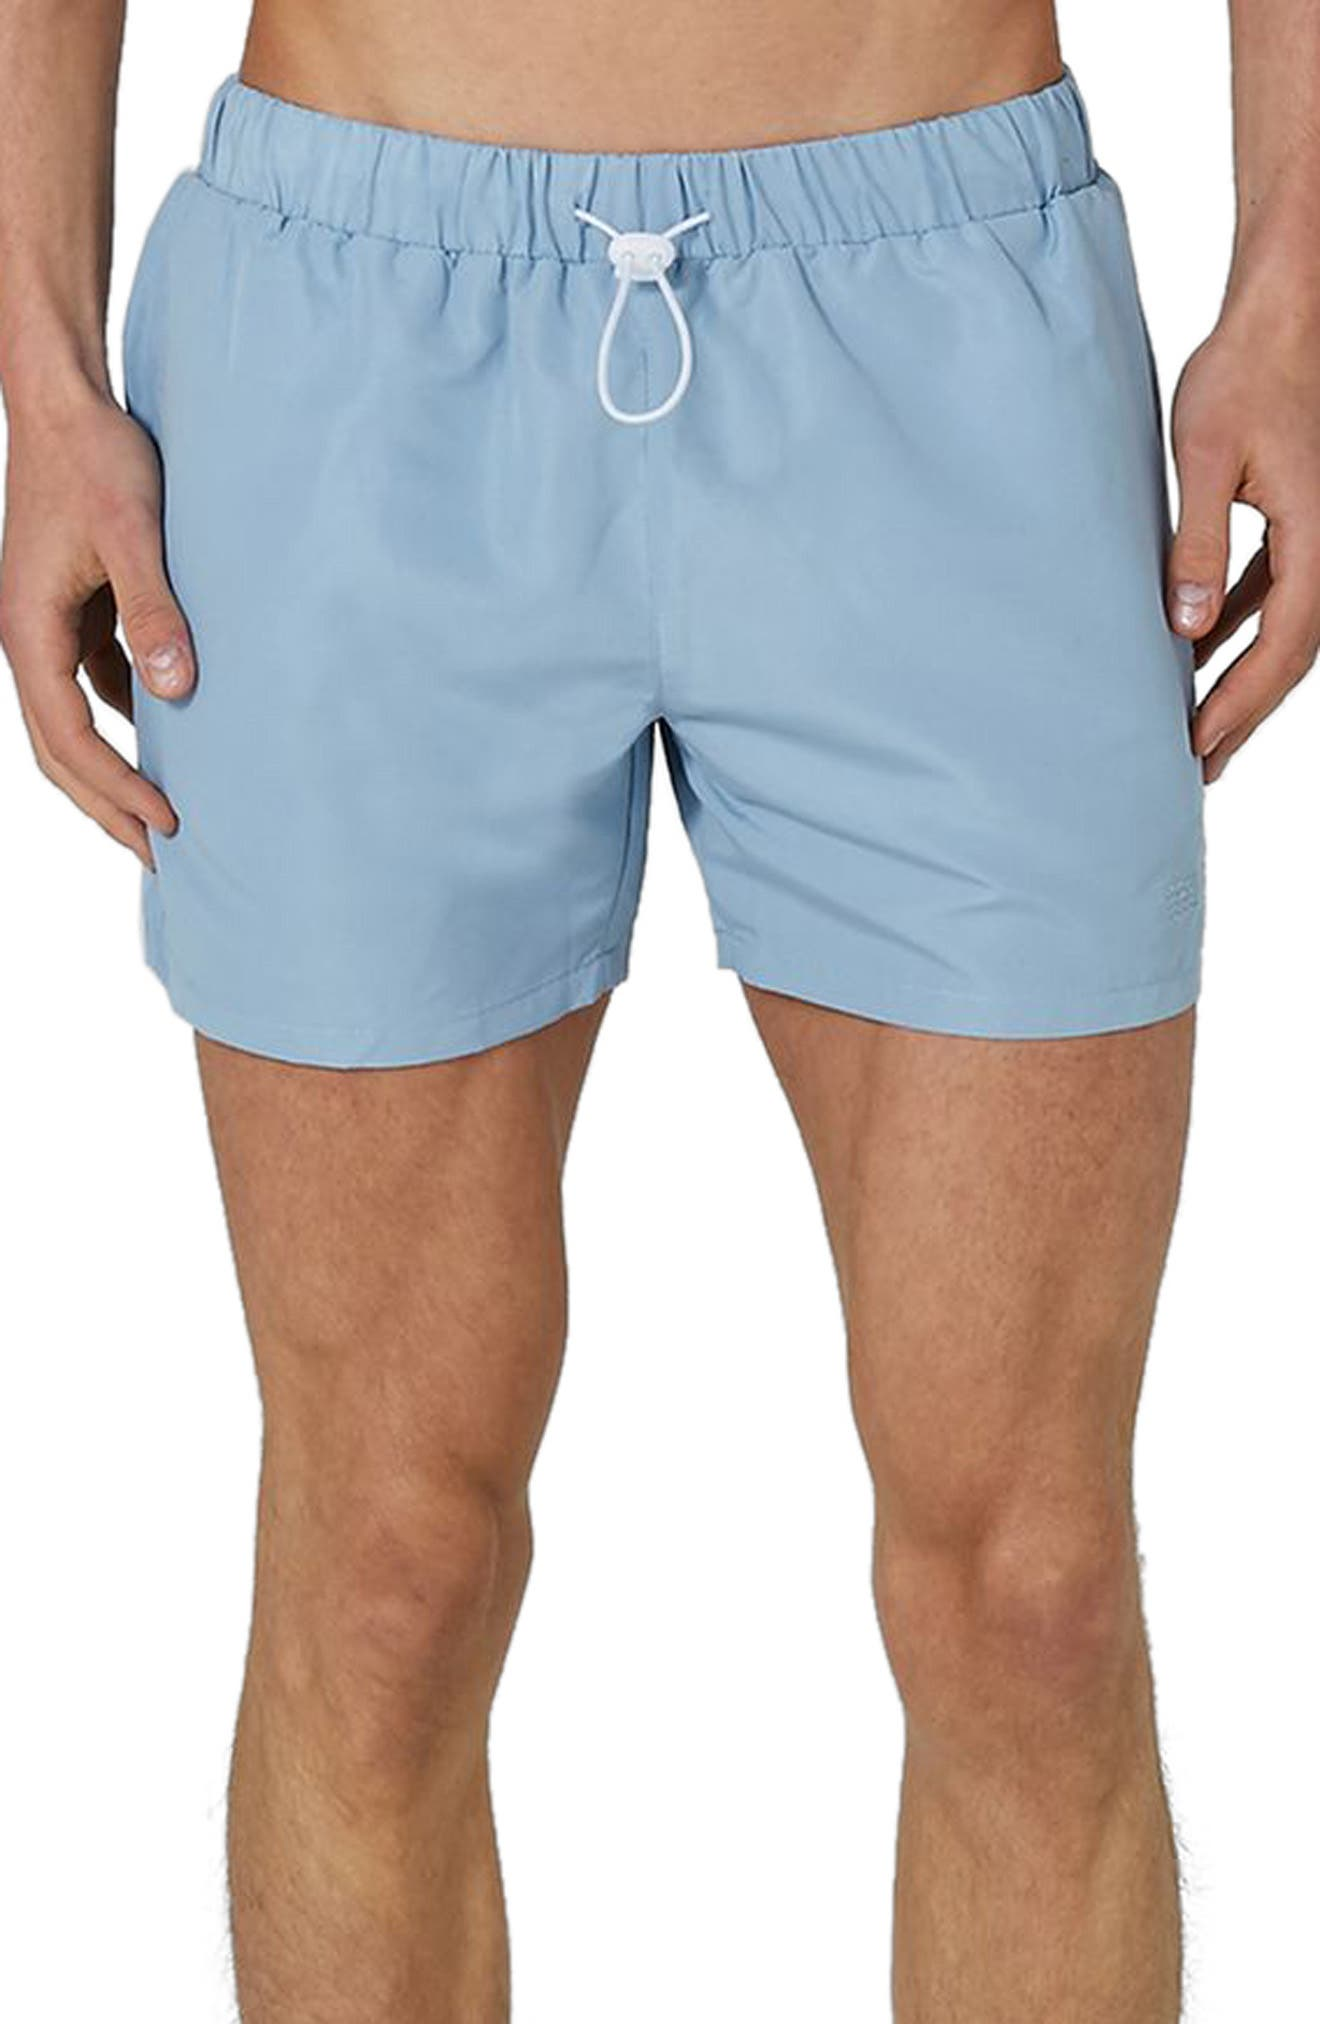 Neptune Swim Trunks,                             Main thumbnail 1, color,                             Mid Blue